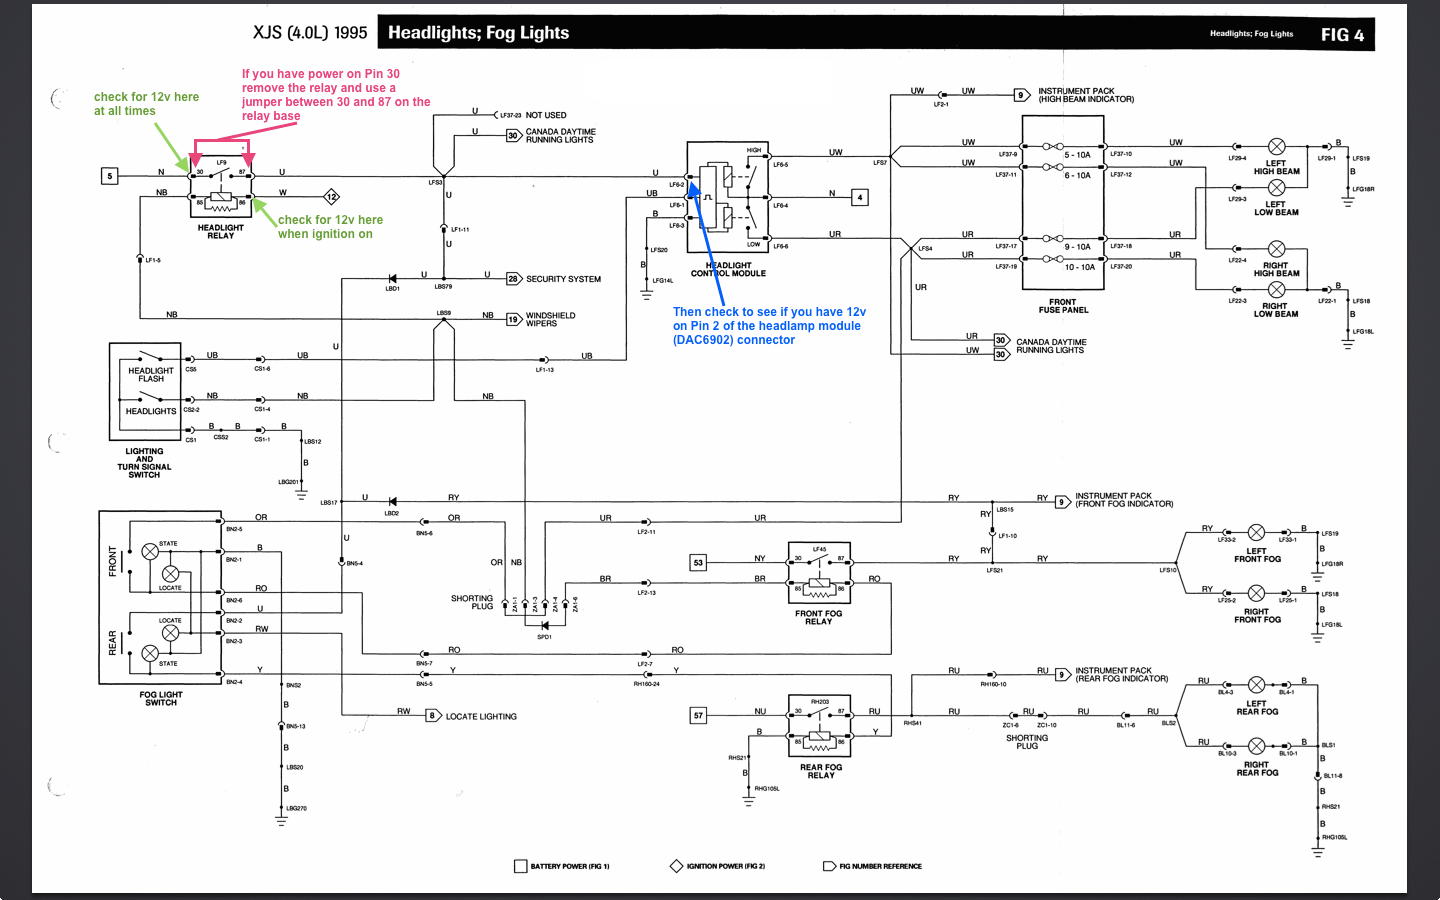 75743d1394645407 headlamp relay dac 6902 headlight trouble shoot?resize\\\=665%2C416 eaton vfd wiring diagram control transformer wiring diagram  at fashall.co